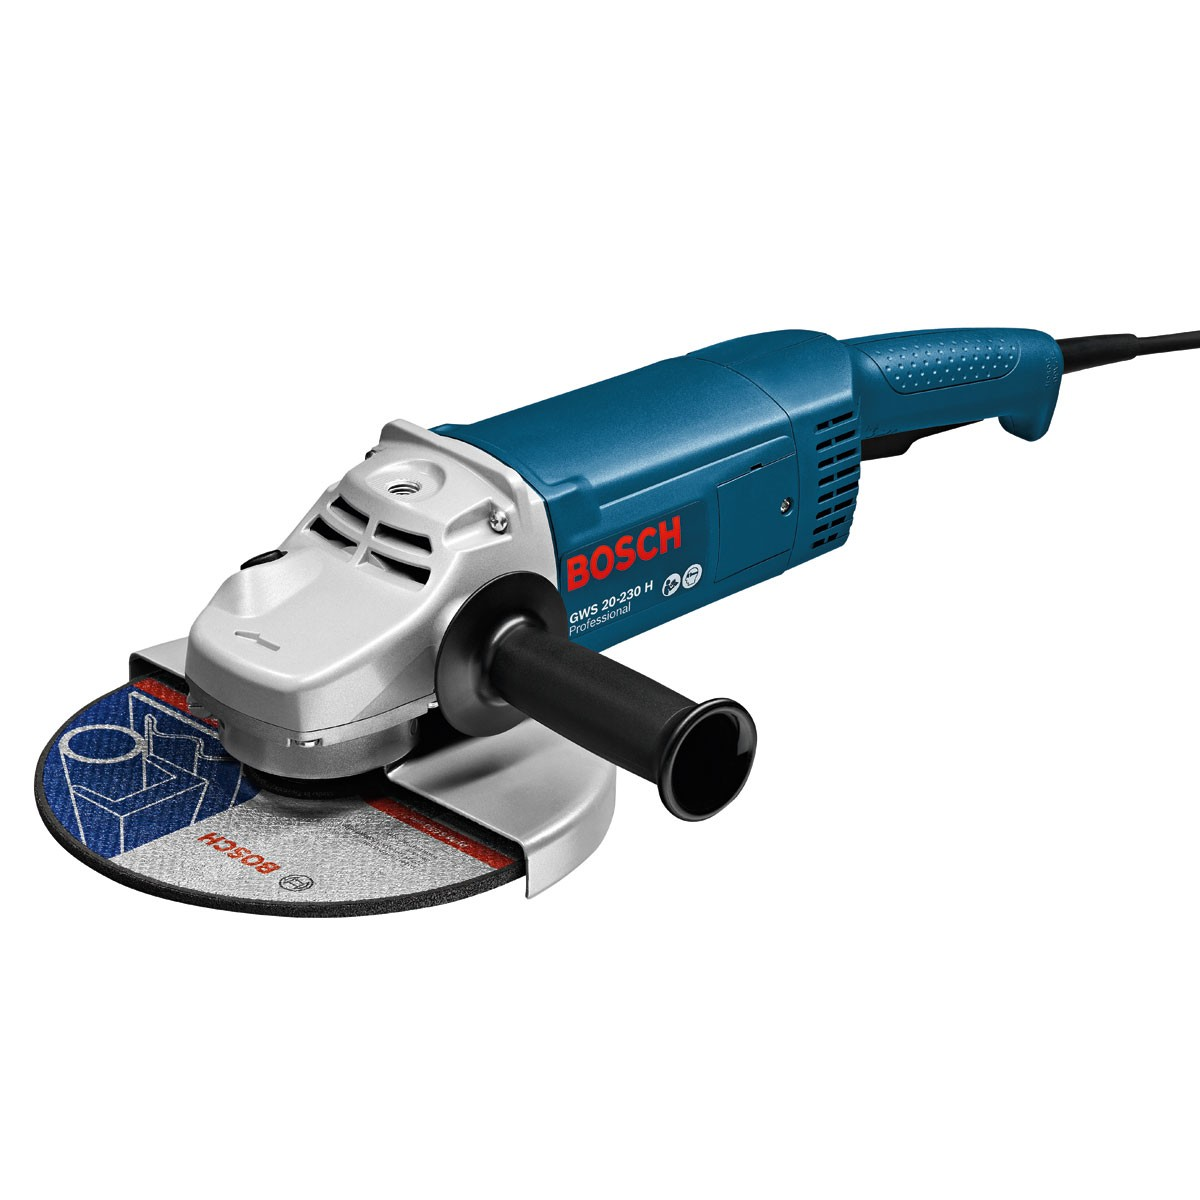 bosch gws 20 230 h professional 9 230mm angle grinder. Black Bedroom Furniture Sets. Home Design Ideas